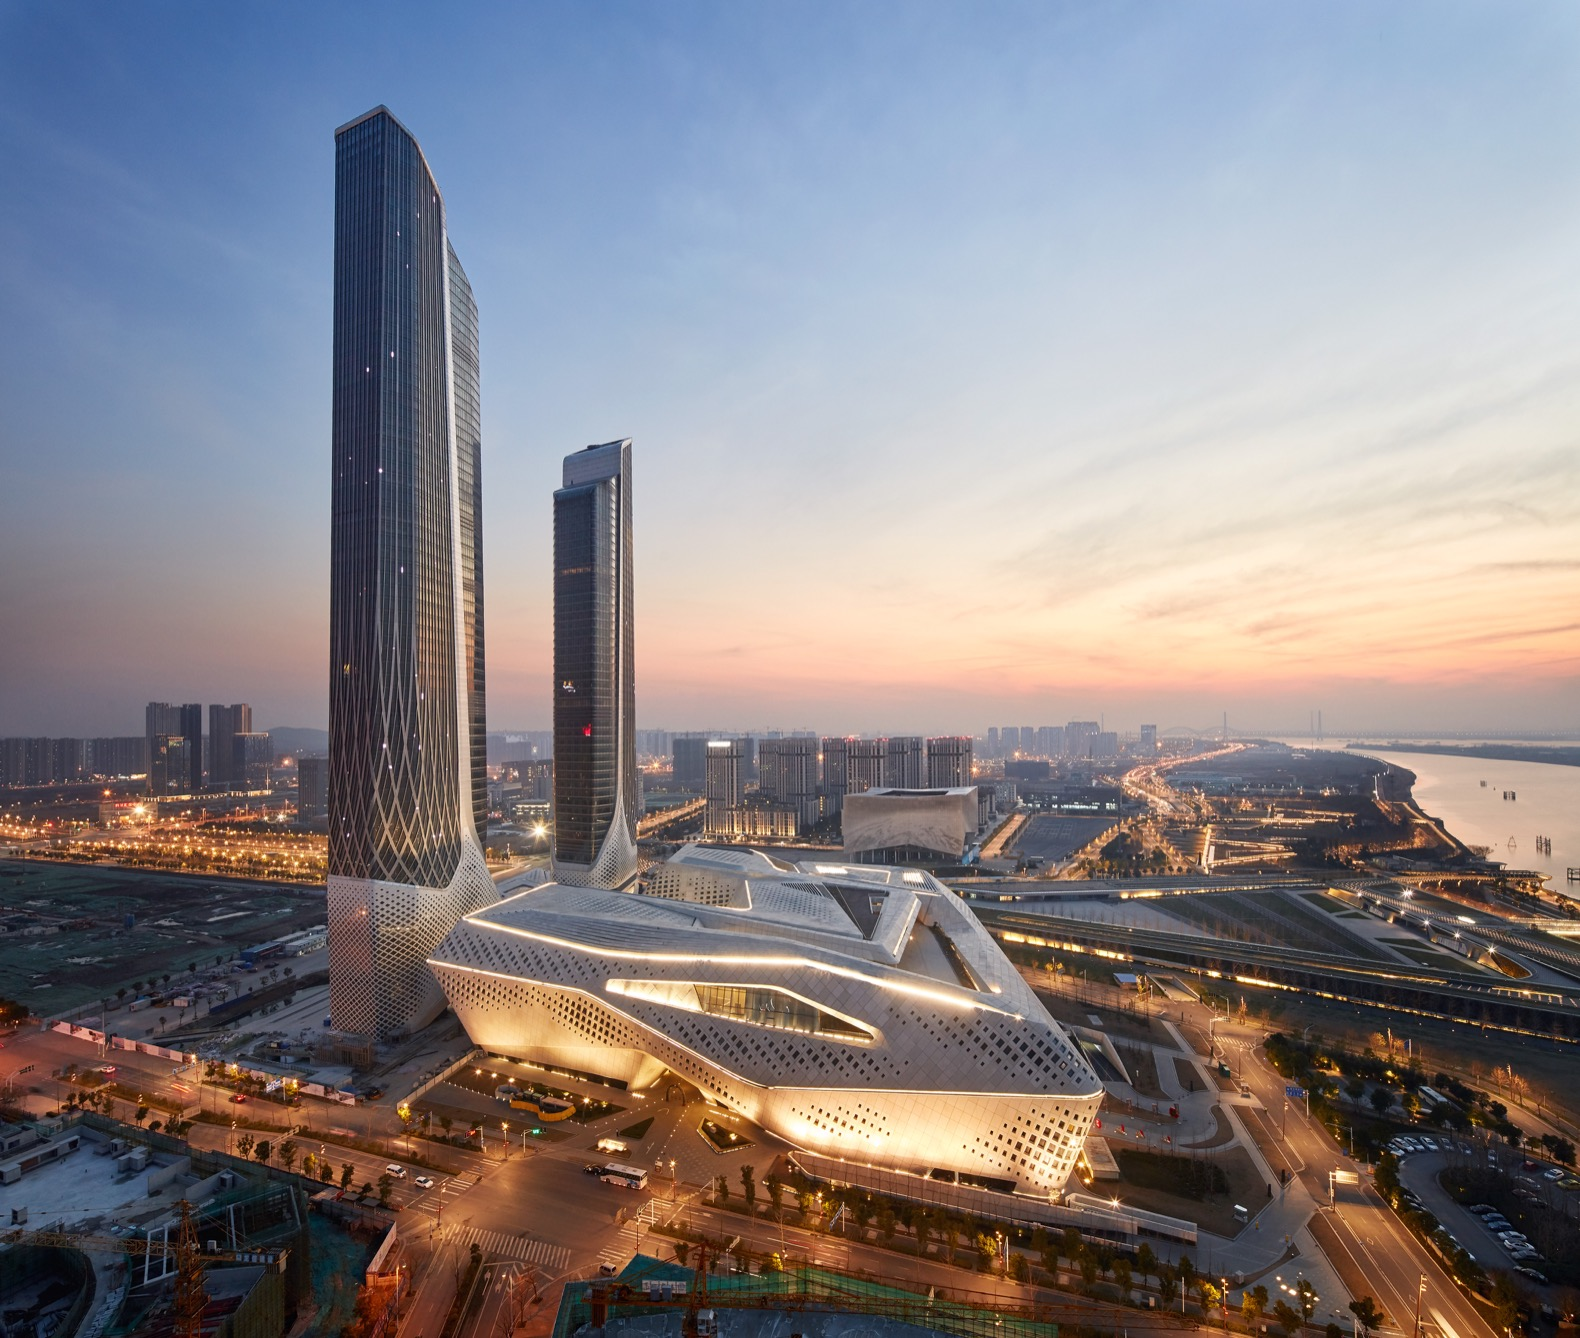 Zaha Hadid Architects completes highly complex Nanjing International Youth Cultural Centre